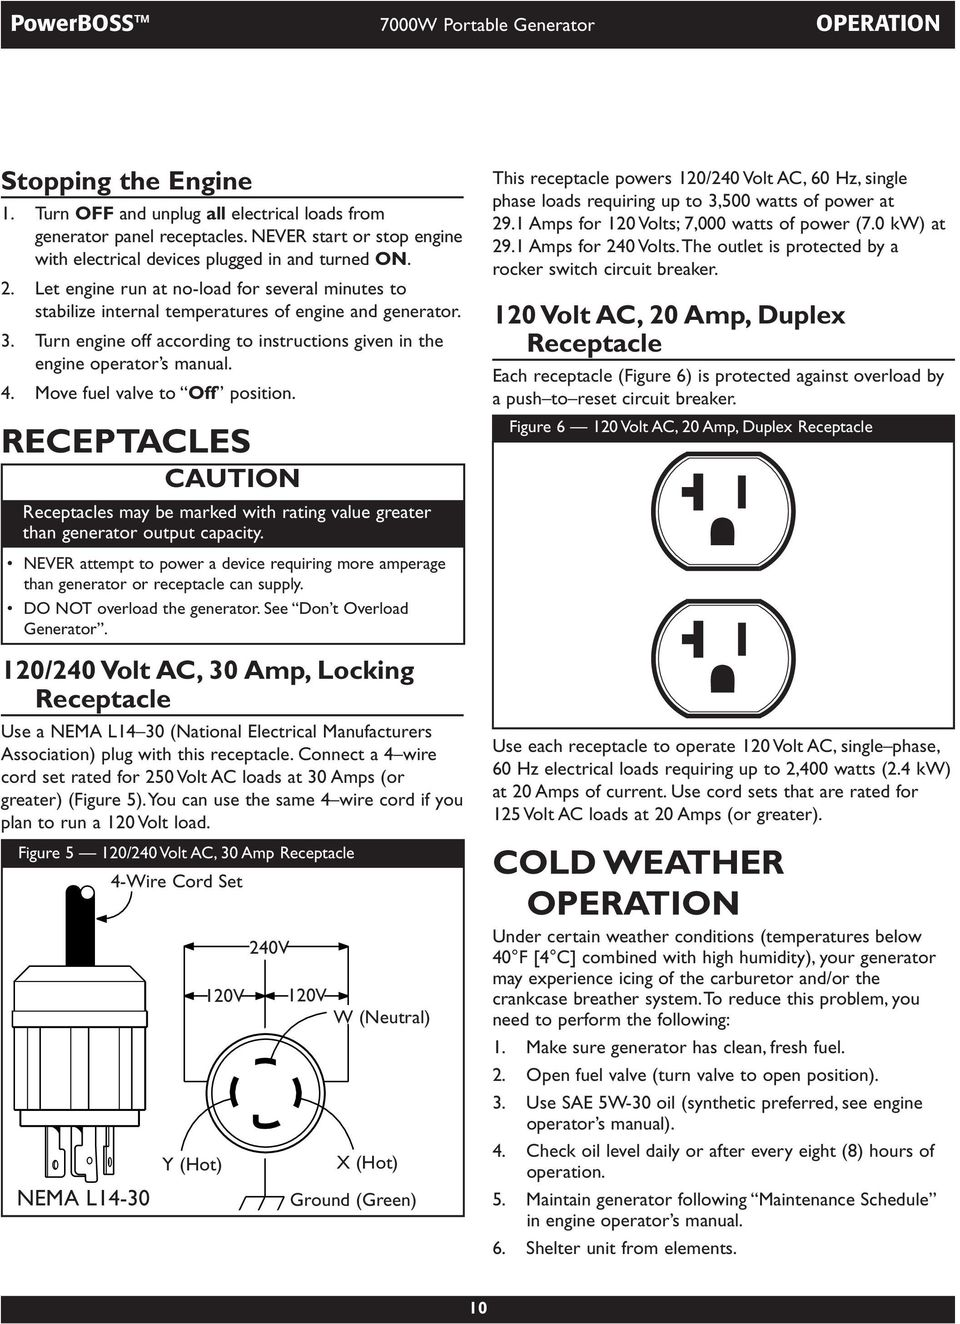 Model Modelo 7000w Operator S Manual Del Operario Briggs Plug Wiring Diagram Hecho Together With On 50 Amp 125v Turn Engine Off According To Instructions Given In The 4